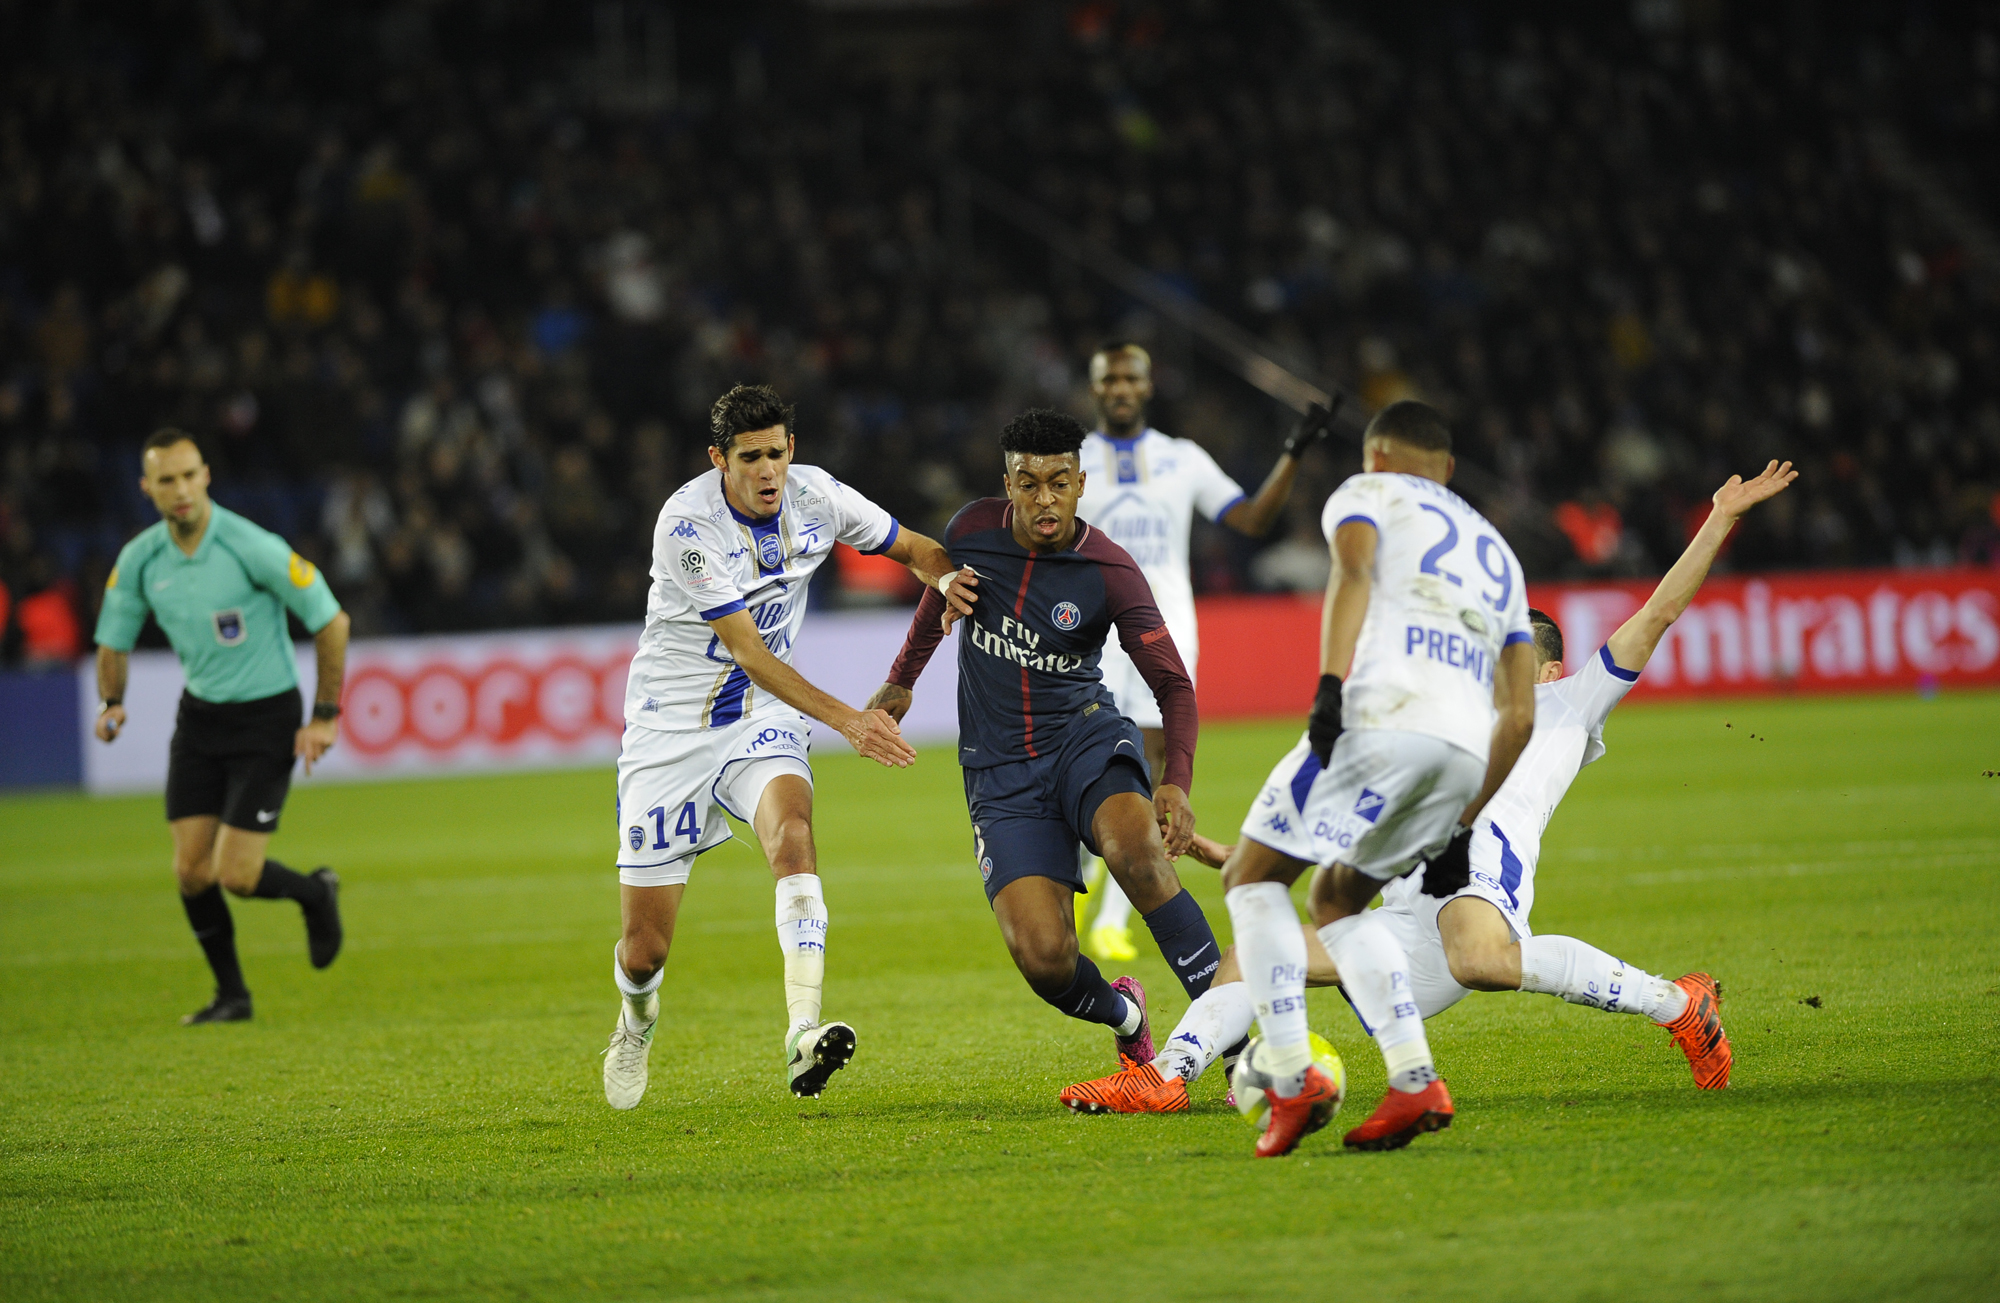 PSG 2-0 ESTAC